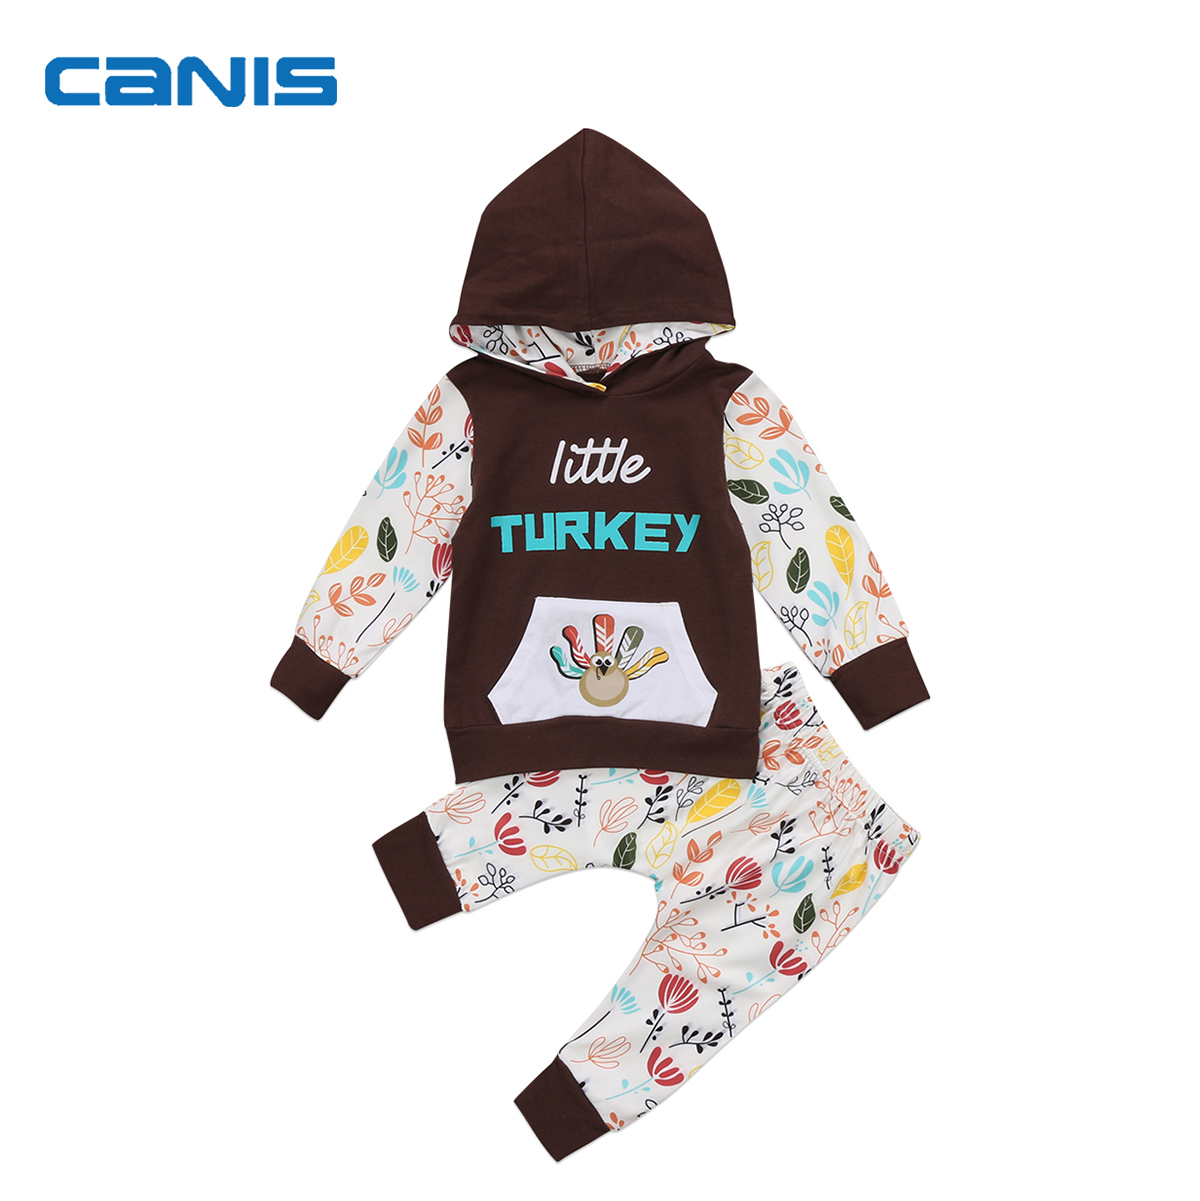 2017 Brand New Toddler Infant Newborn Baby Kids Boys Girls Clothes Hooded Long Sleeve Tops Long Pants Sets Turkey Printed Outfit newborn baby girls infant romper jumpsuit hooded clothes outfit 0 3y baby set toddler girl clothing sets kids clothes 2016 new